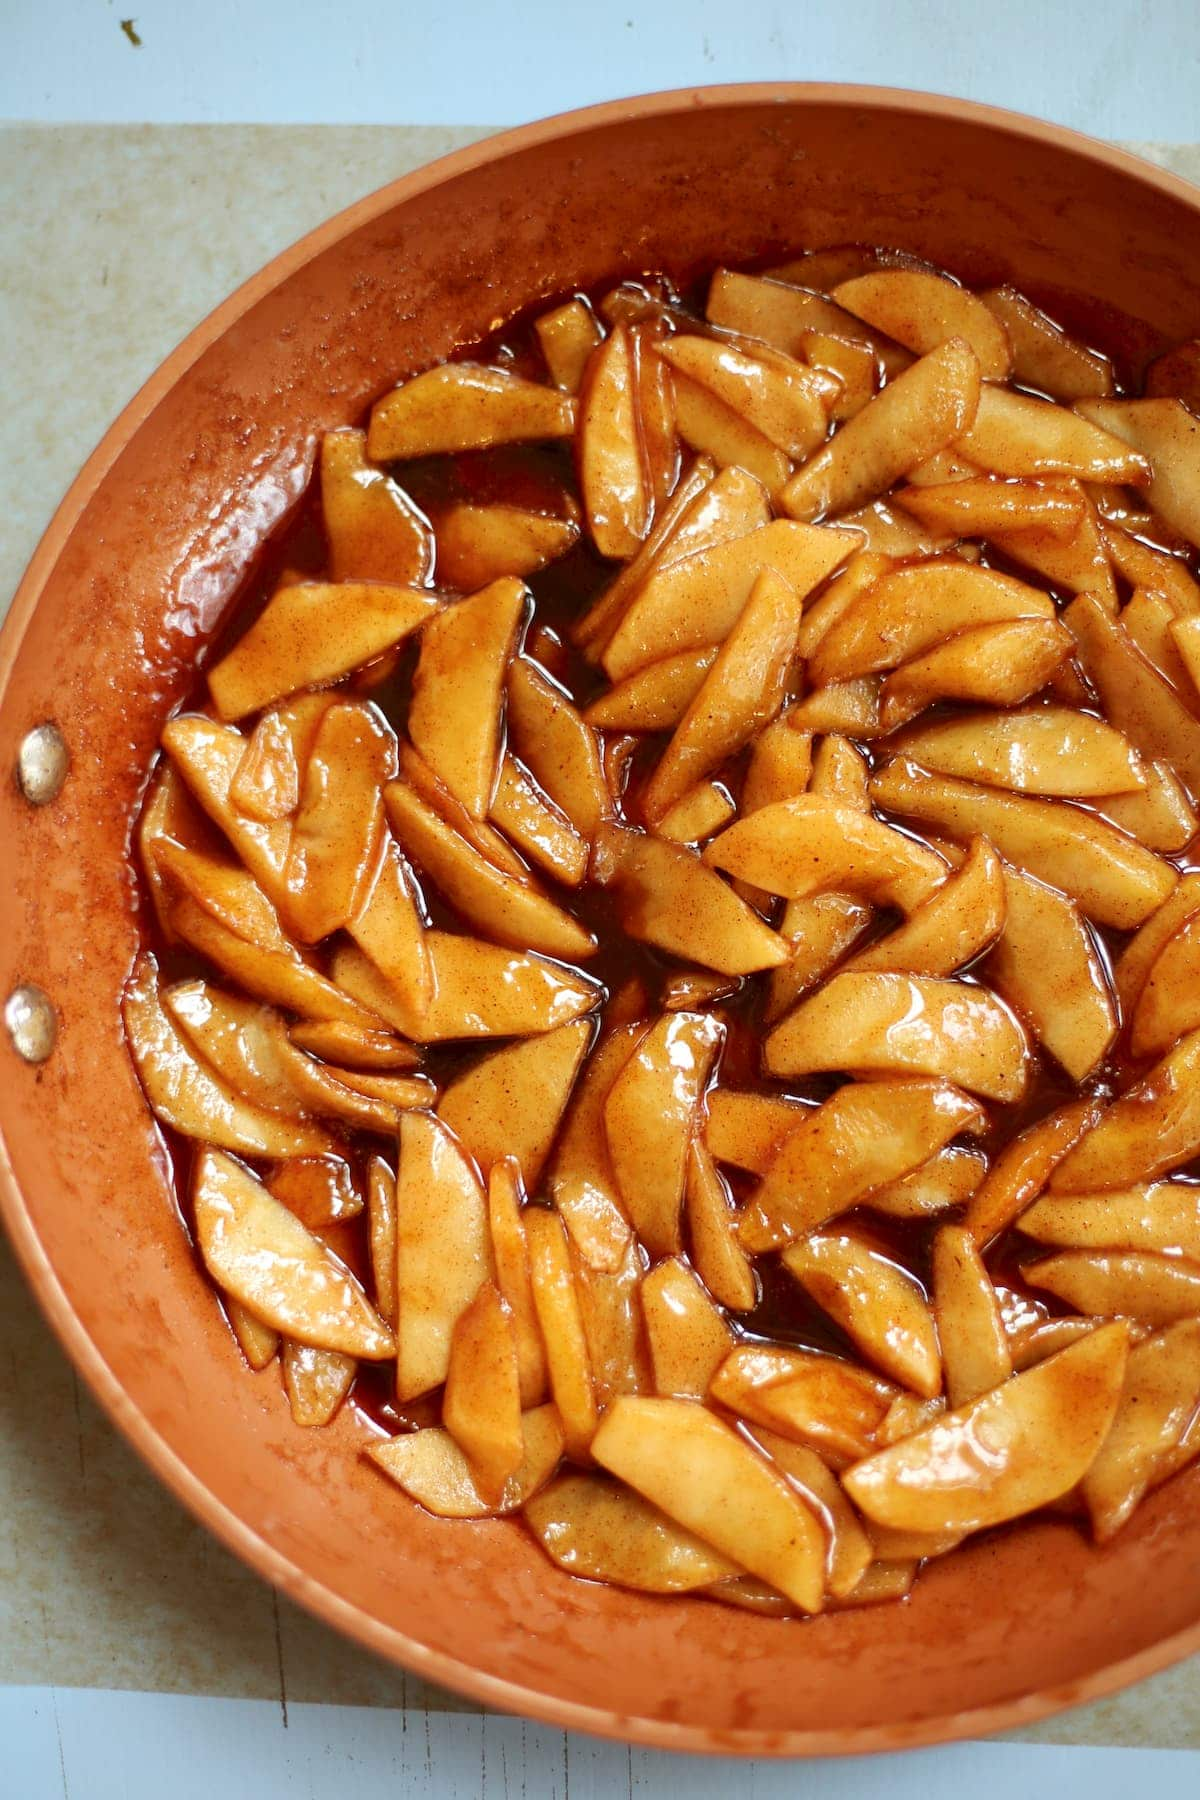 spiced apples in a skillet